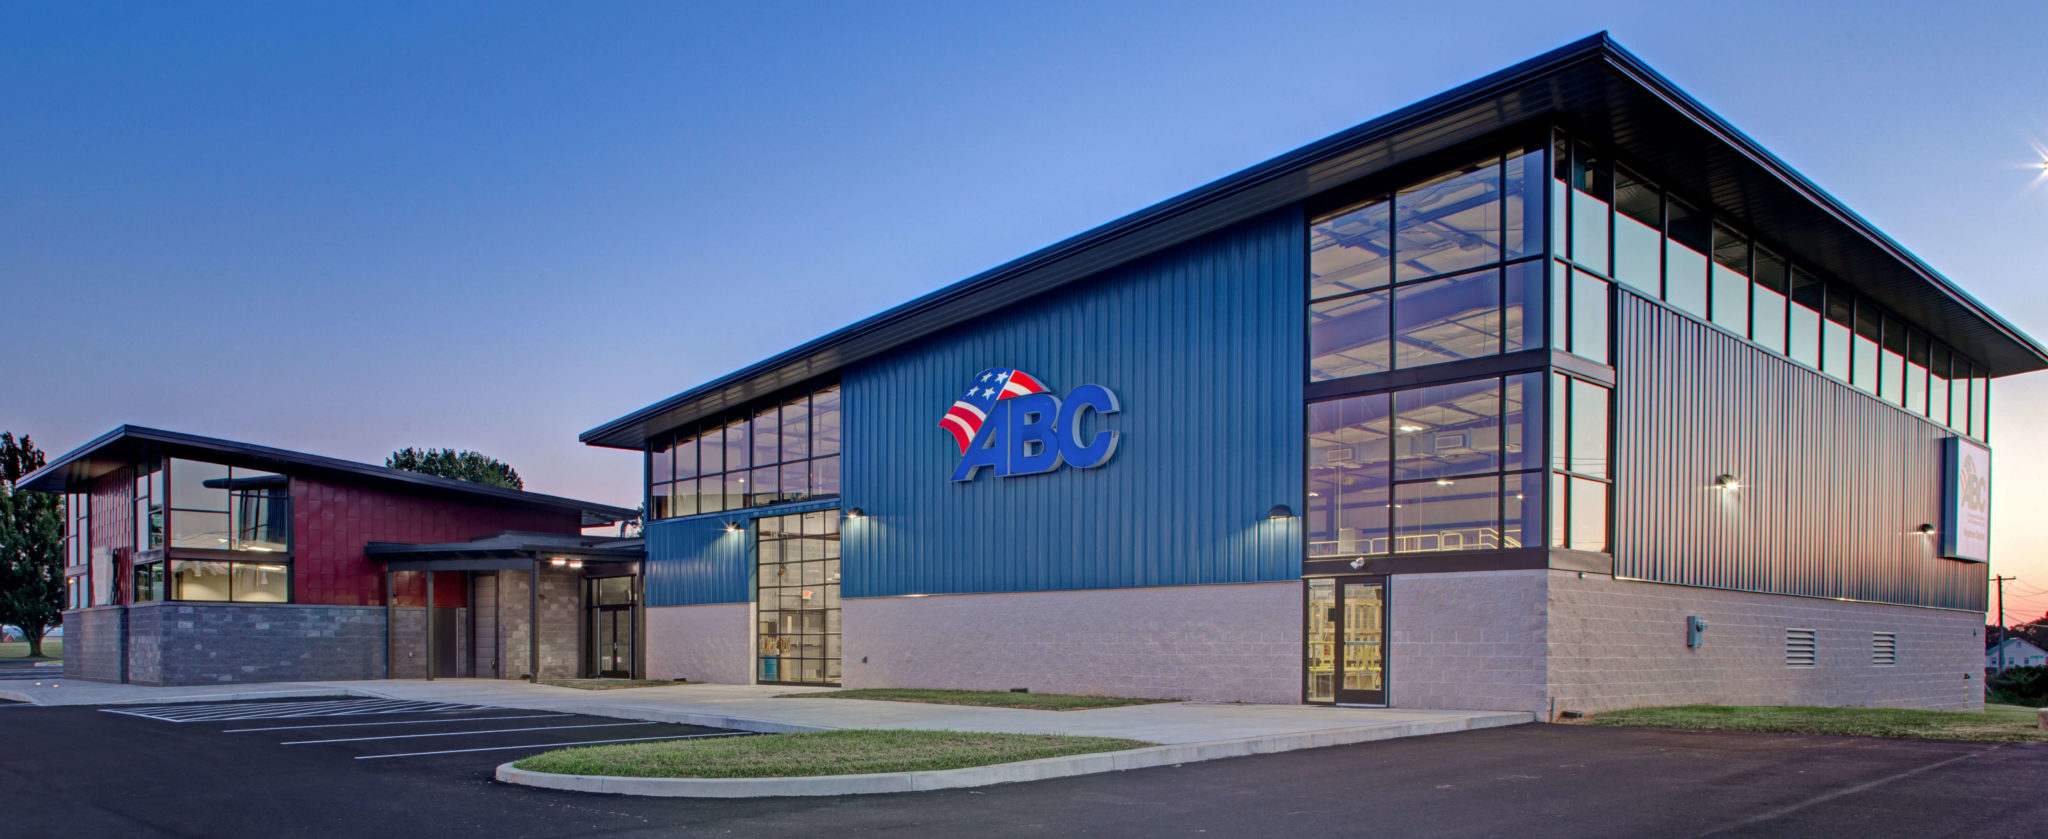 ABC Keystone Training Facility